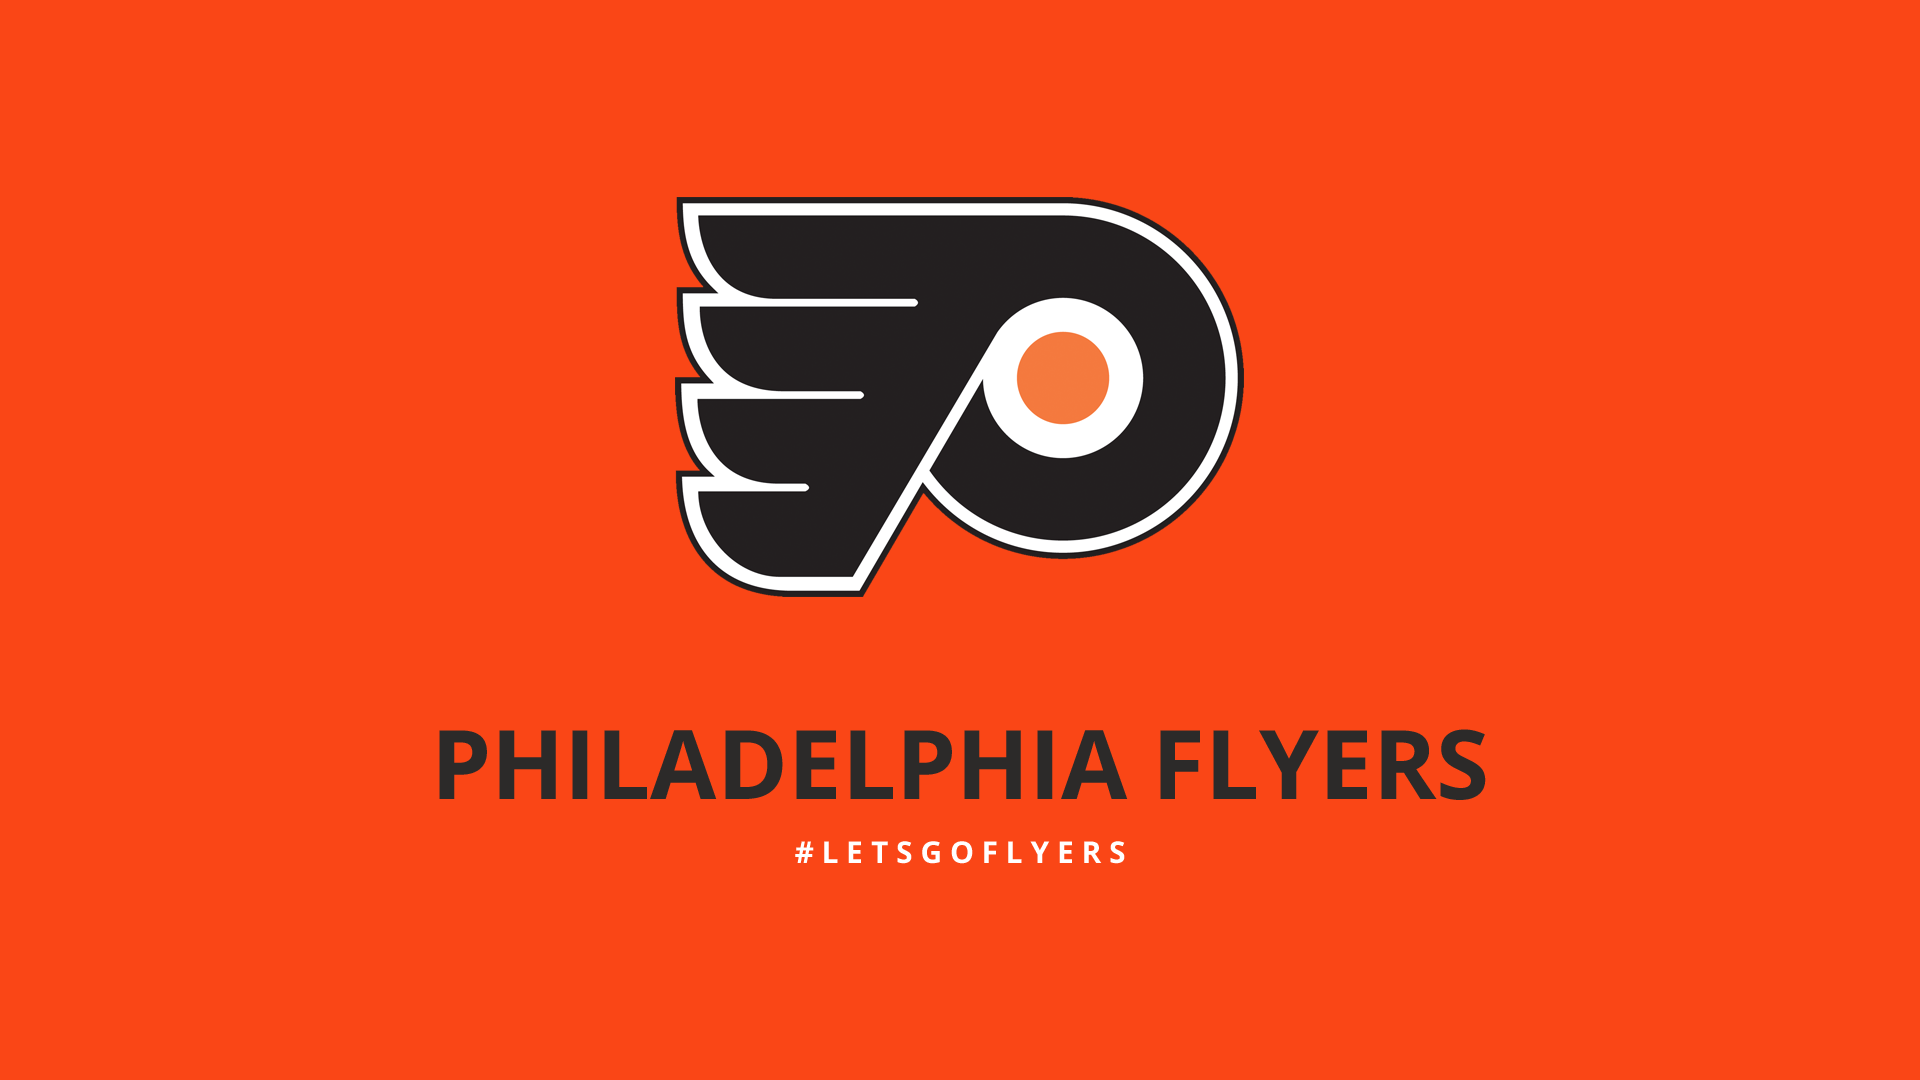 philadelphia flyers wallpaper by lfiore minimalist philadelphia flyers 1920x1080